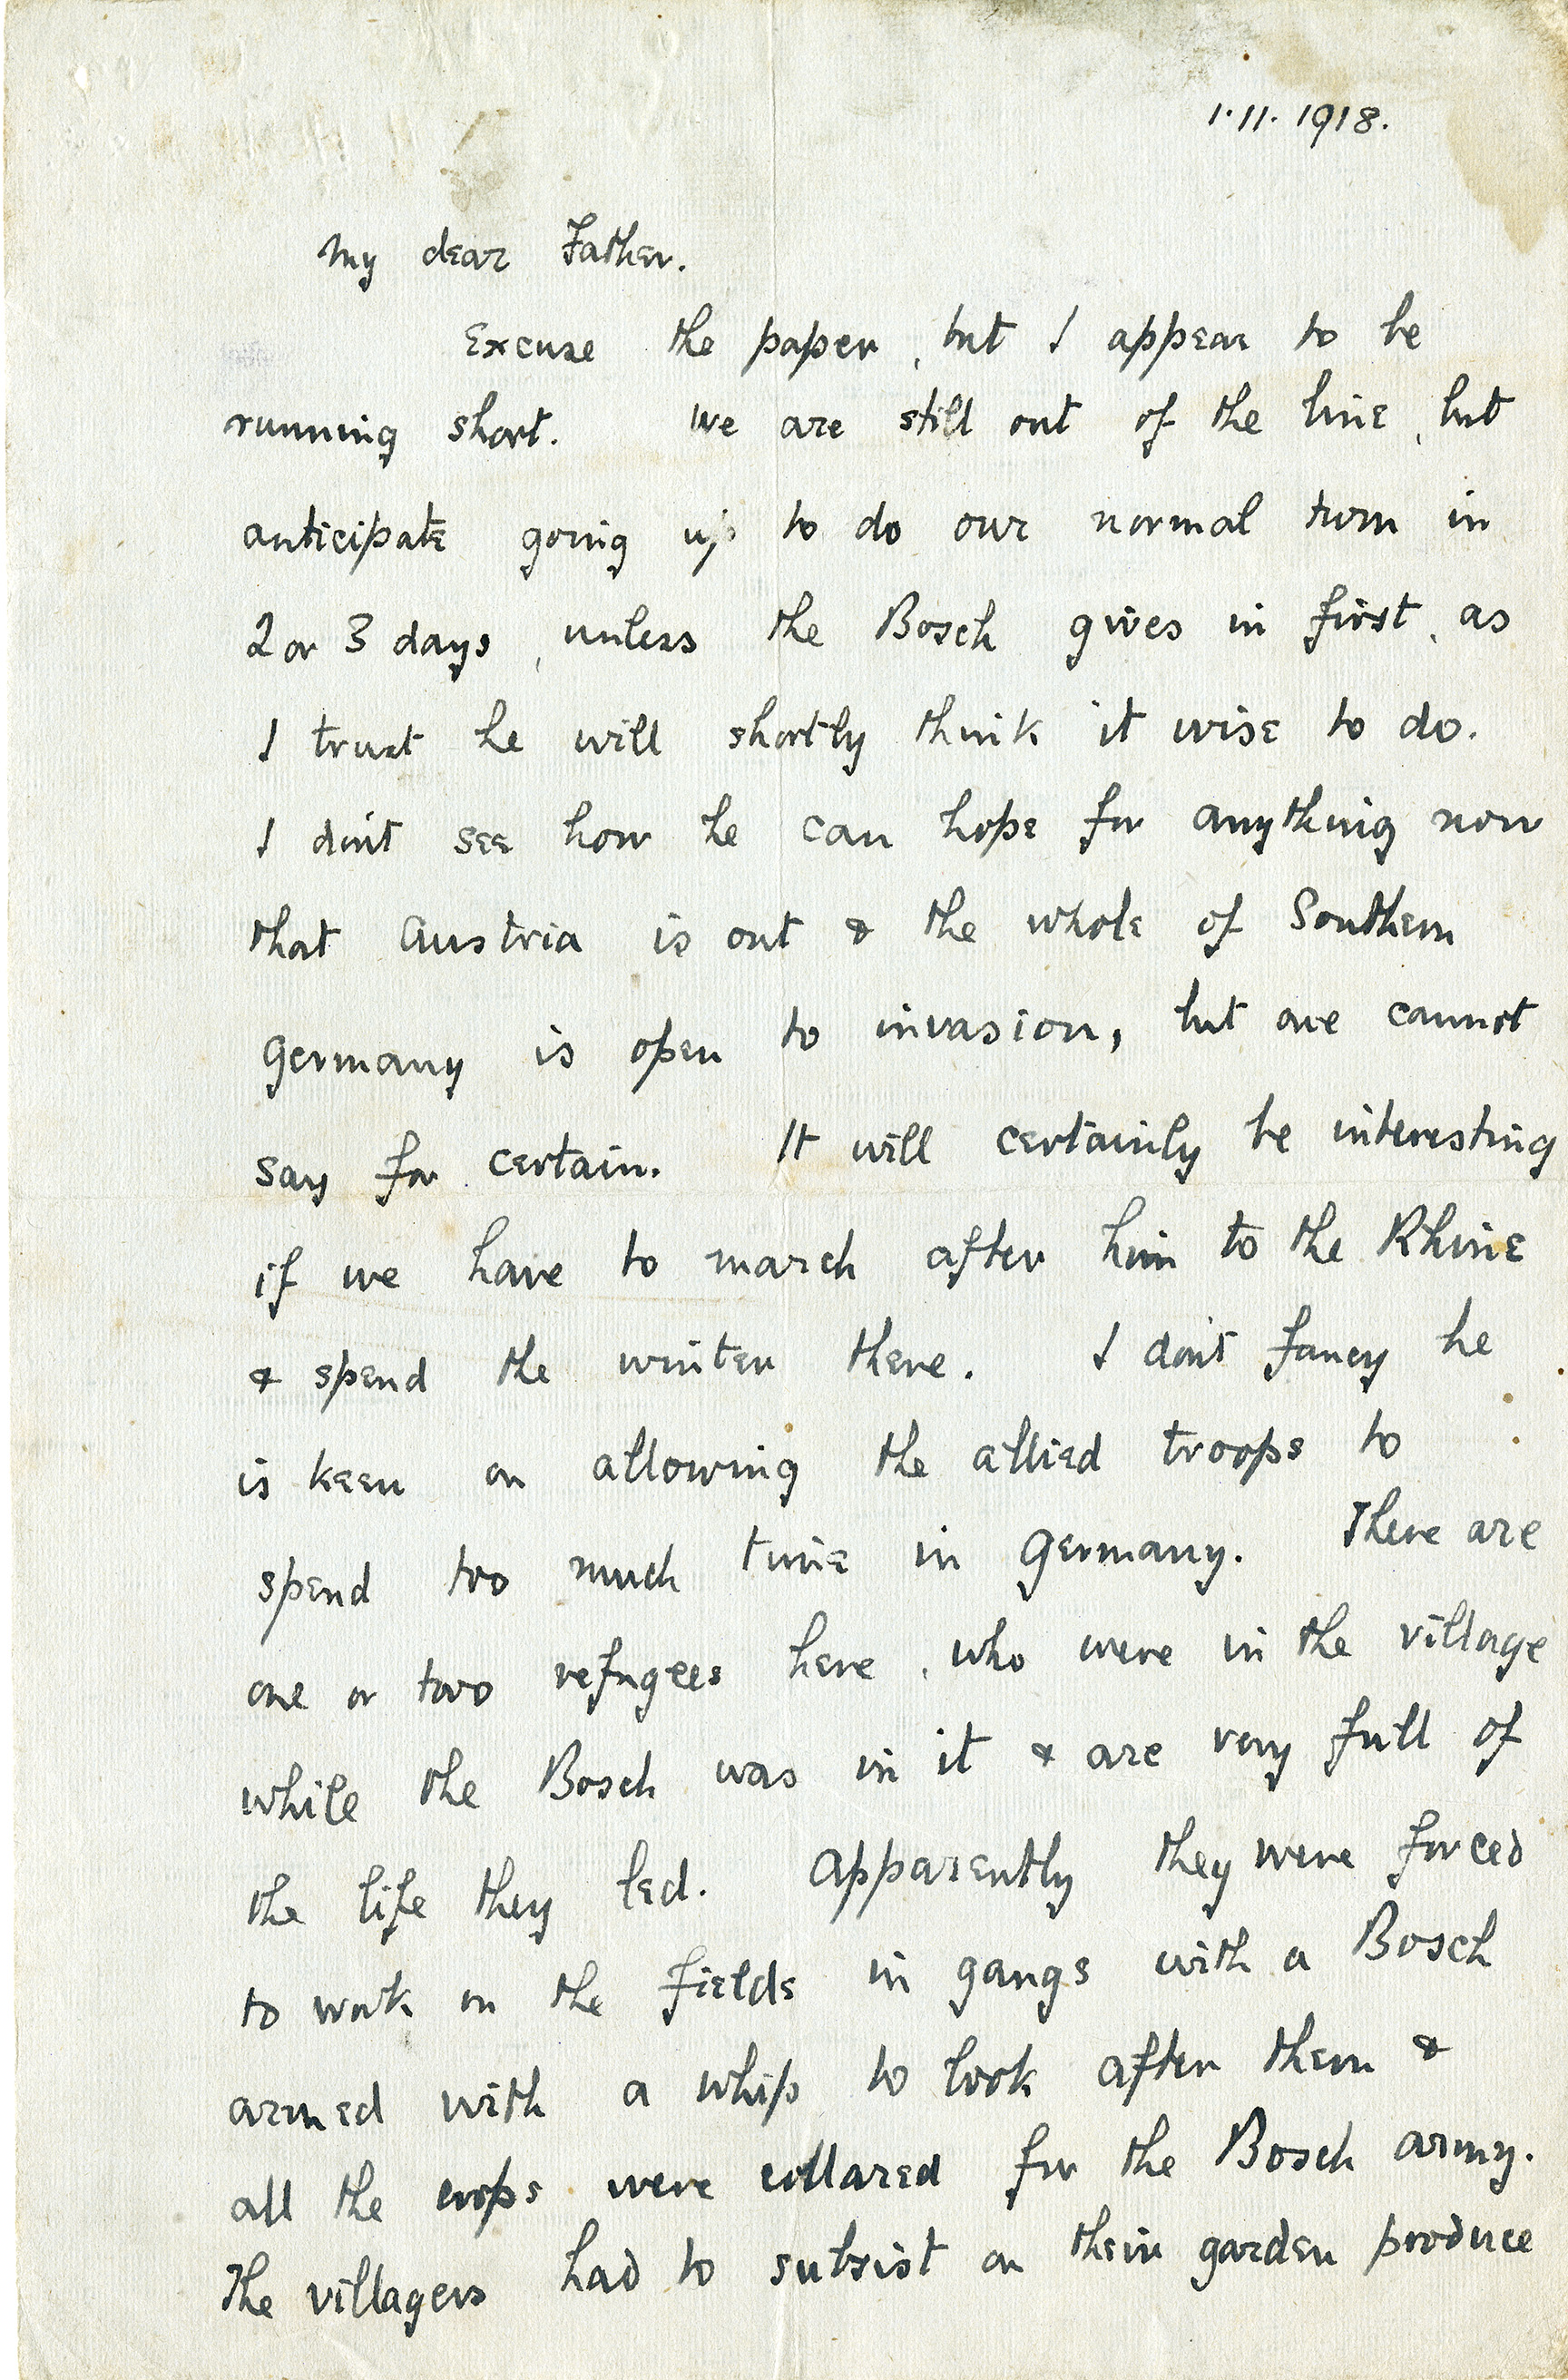 Letter to Father 1-11-1918 page 1